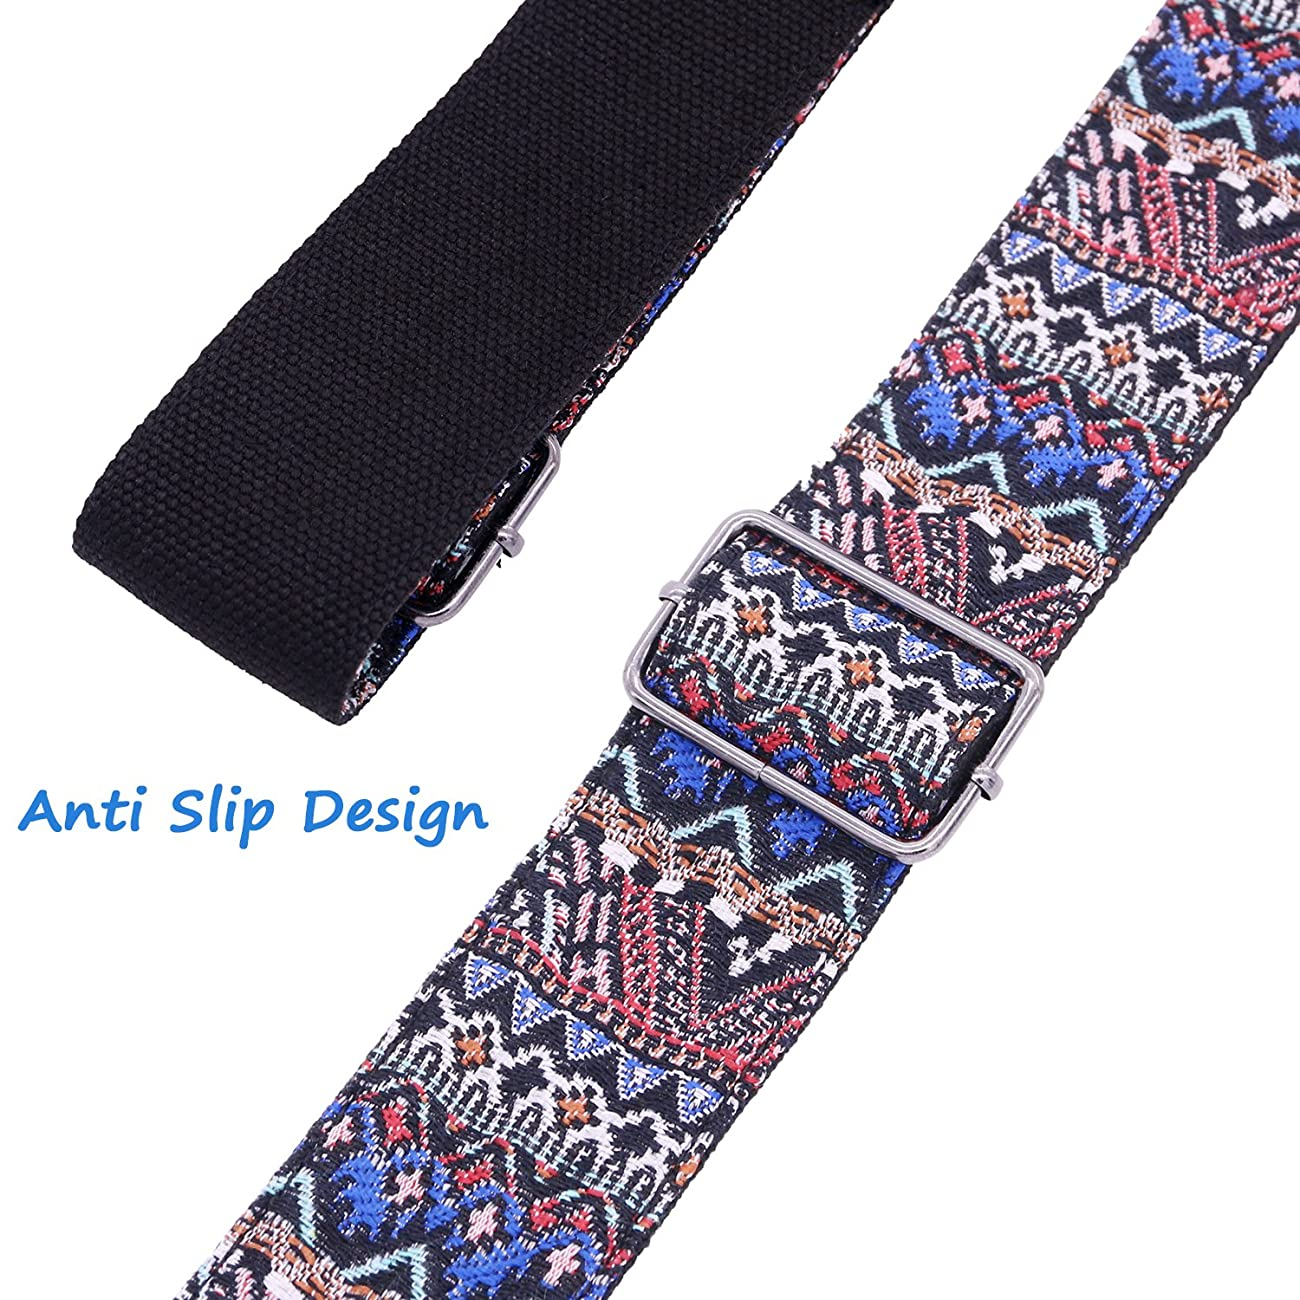 Anwenk Guitar Strap Acoustic Guitar Strap Bass Guitar Strap Woven Hootenanny Style Cool Vintage Pattern with Pick Pocket ,, Leather Ends, 3 Pcs of Guitar Picks, Ties for Acoustic Guitars 3